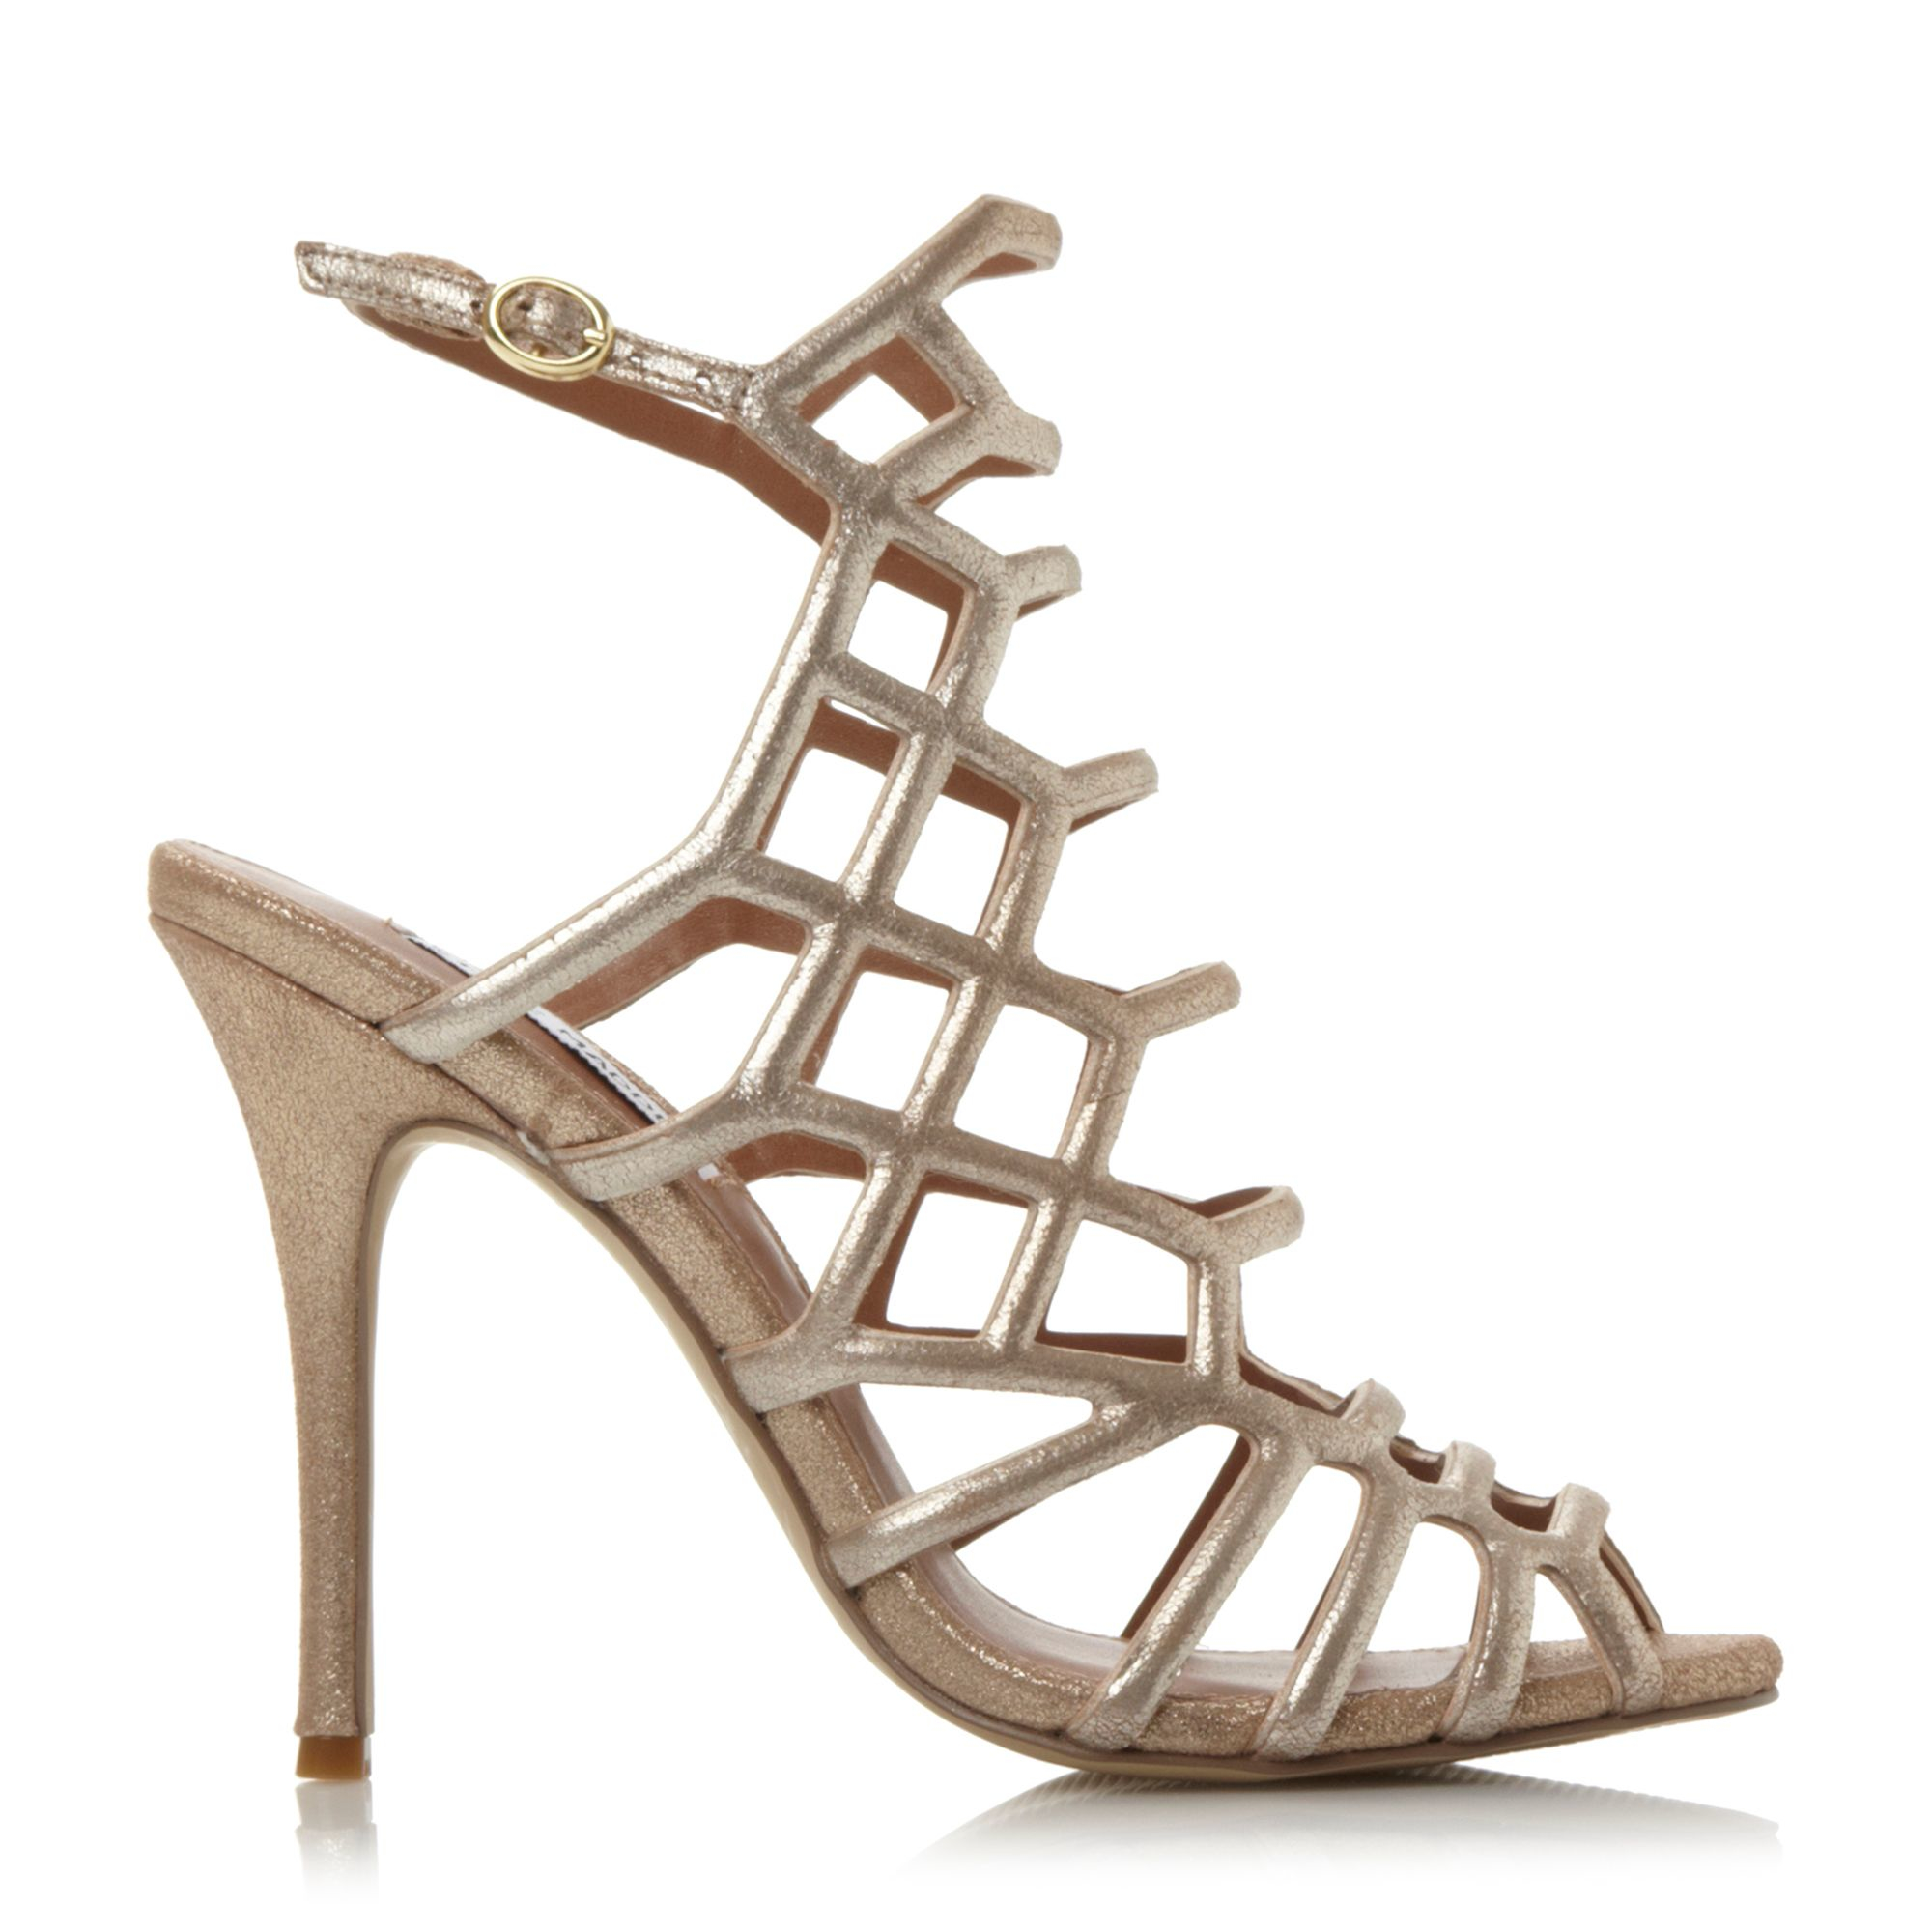 Steve madden Slither Caged Heel Sandals in Metallic  Lyst